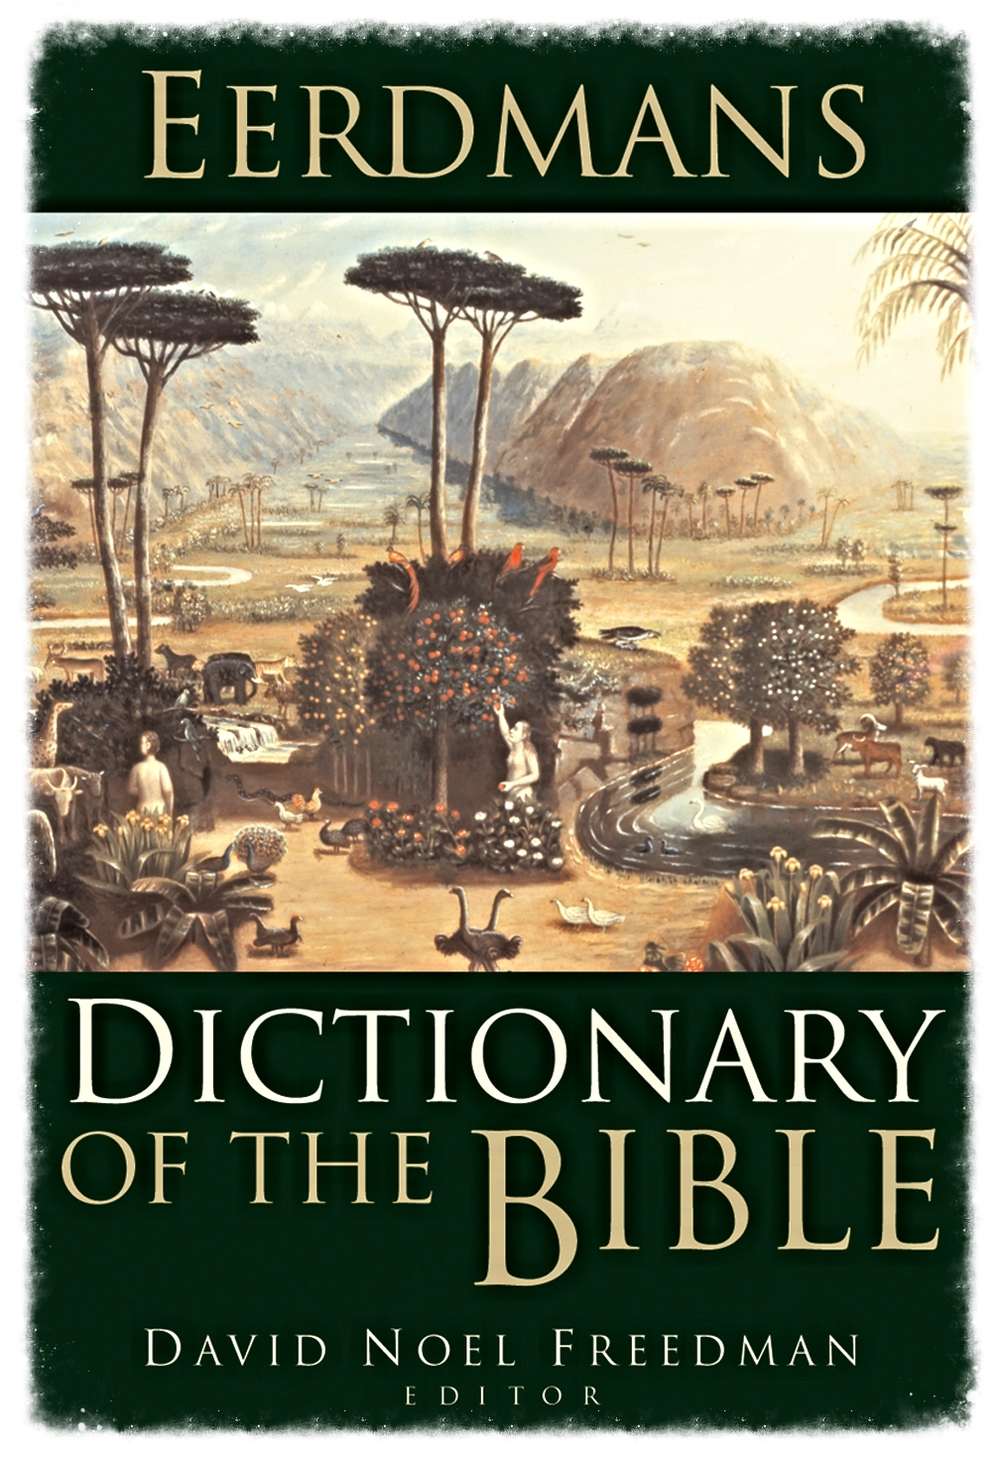 Eerdmans Bible Dictionary.jpg